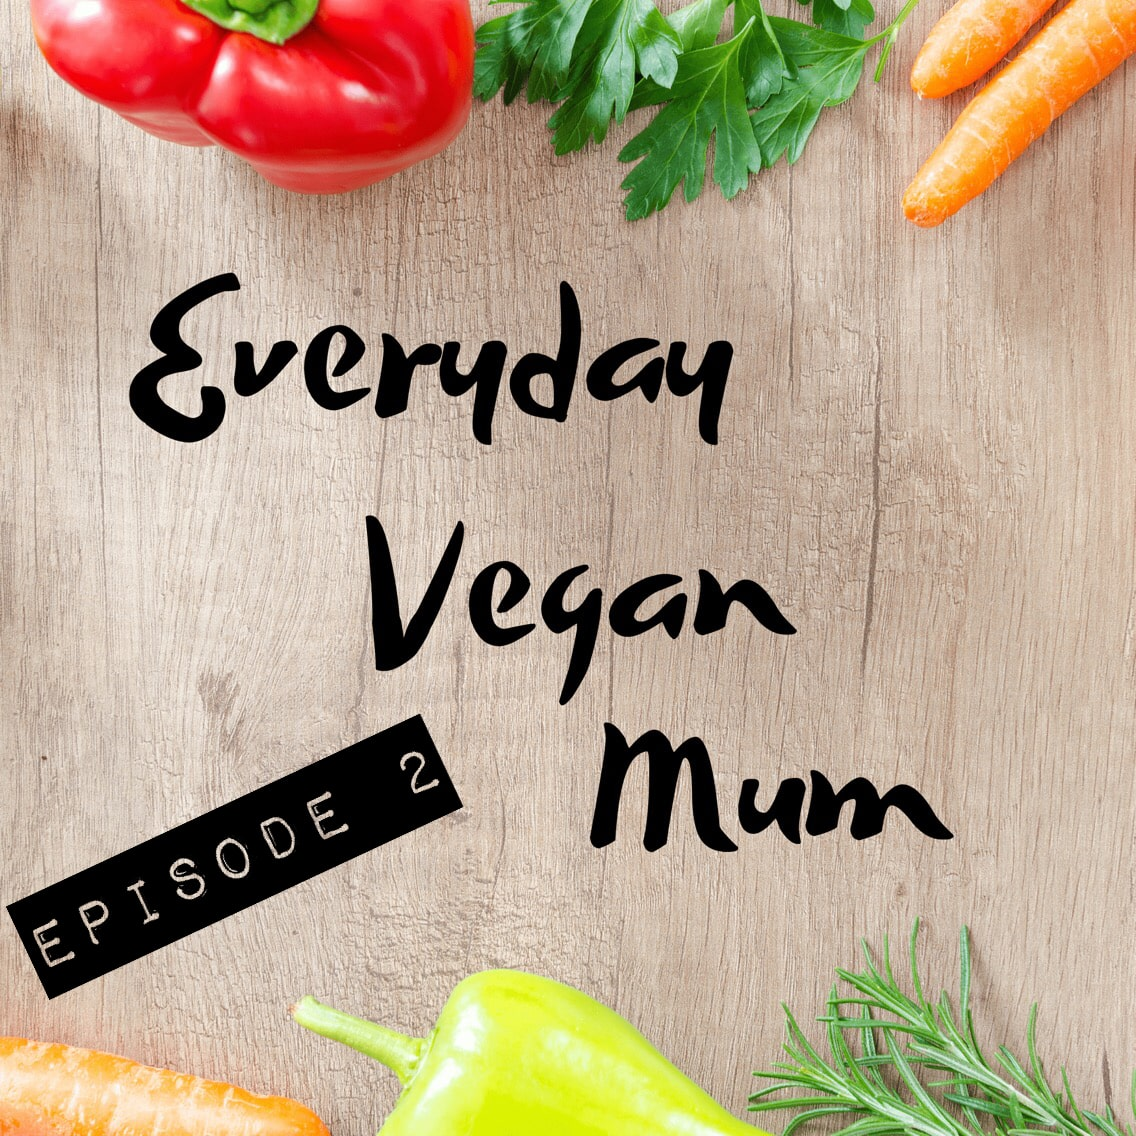 Is it safe to feed a child a vegan diet? The Everyday Vegan Mum Podcast Episode 2